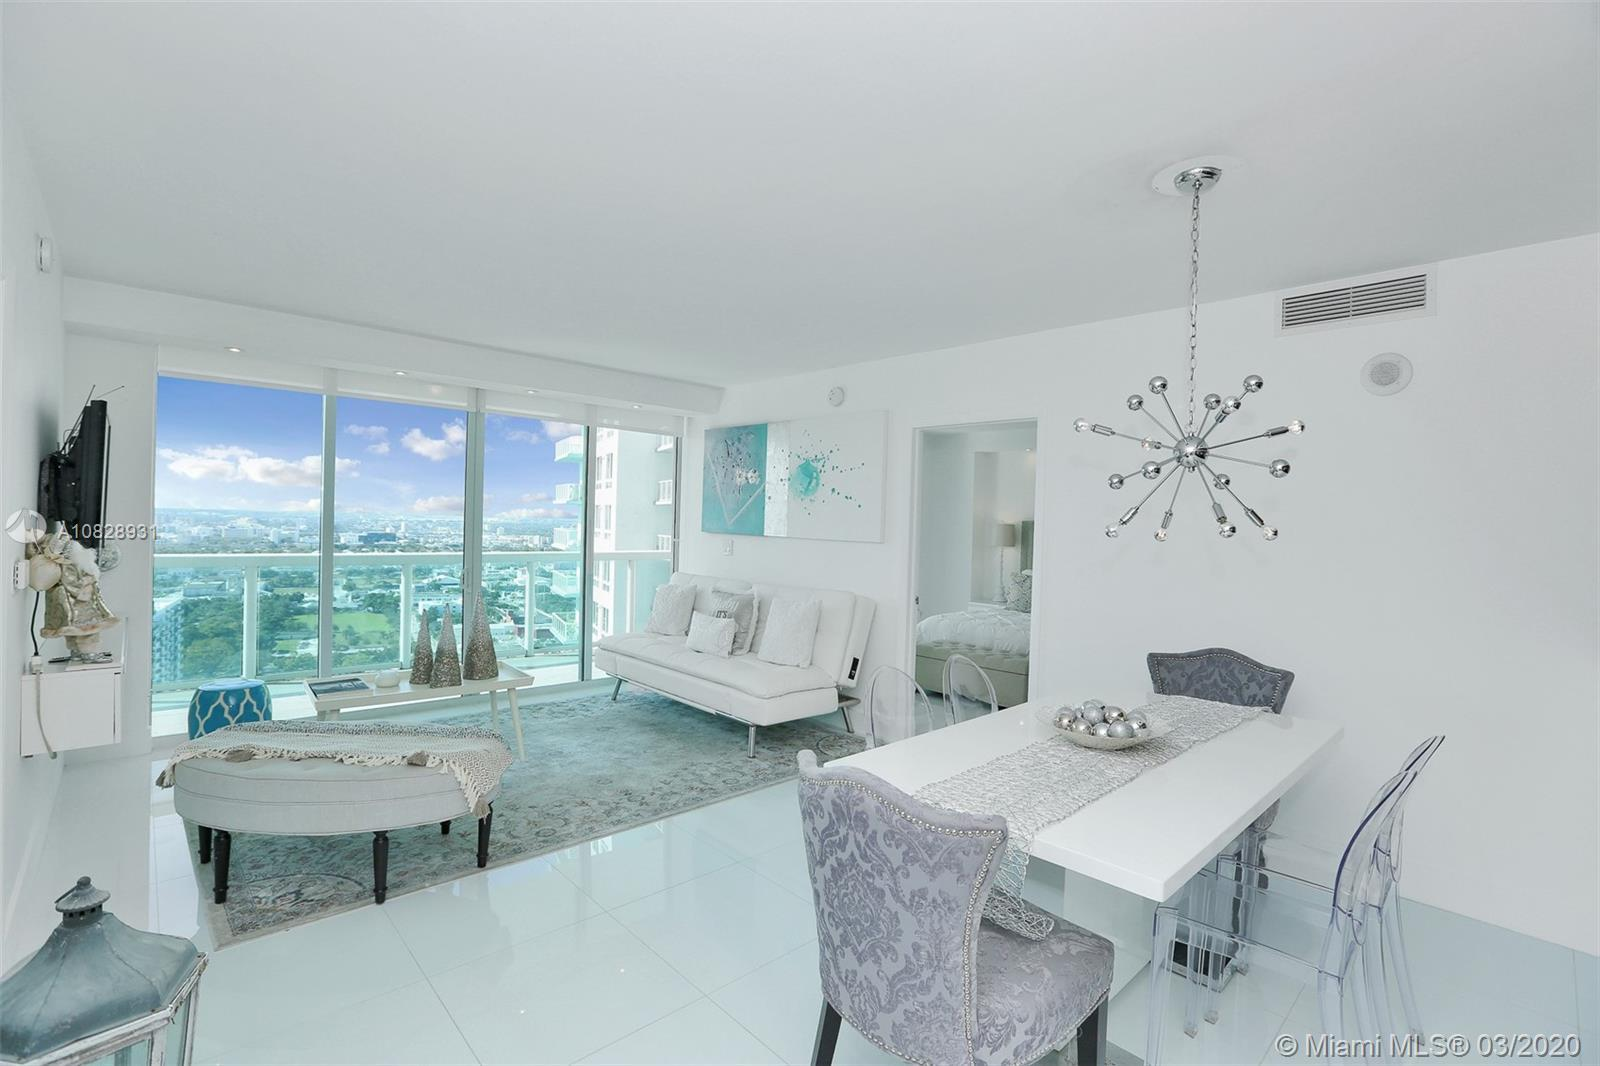 SPECTACULAR SPLIT FLOOR PLAN UNIT FULLY REMODELED TO THE FINEST STANDARDS WITH MAGNIFICENT PANORAMIC